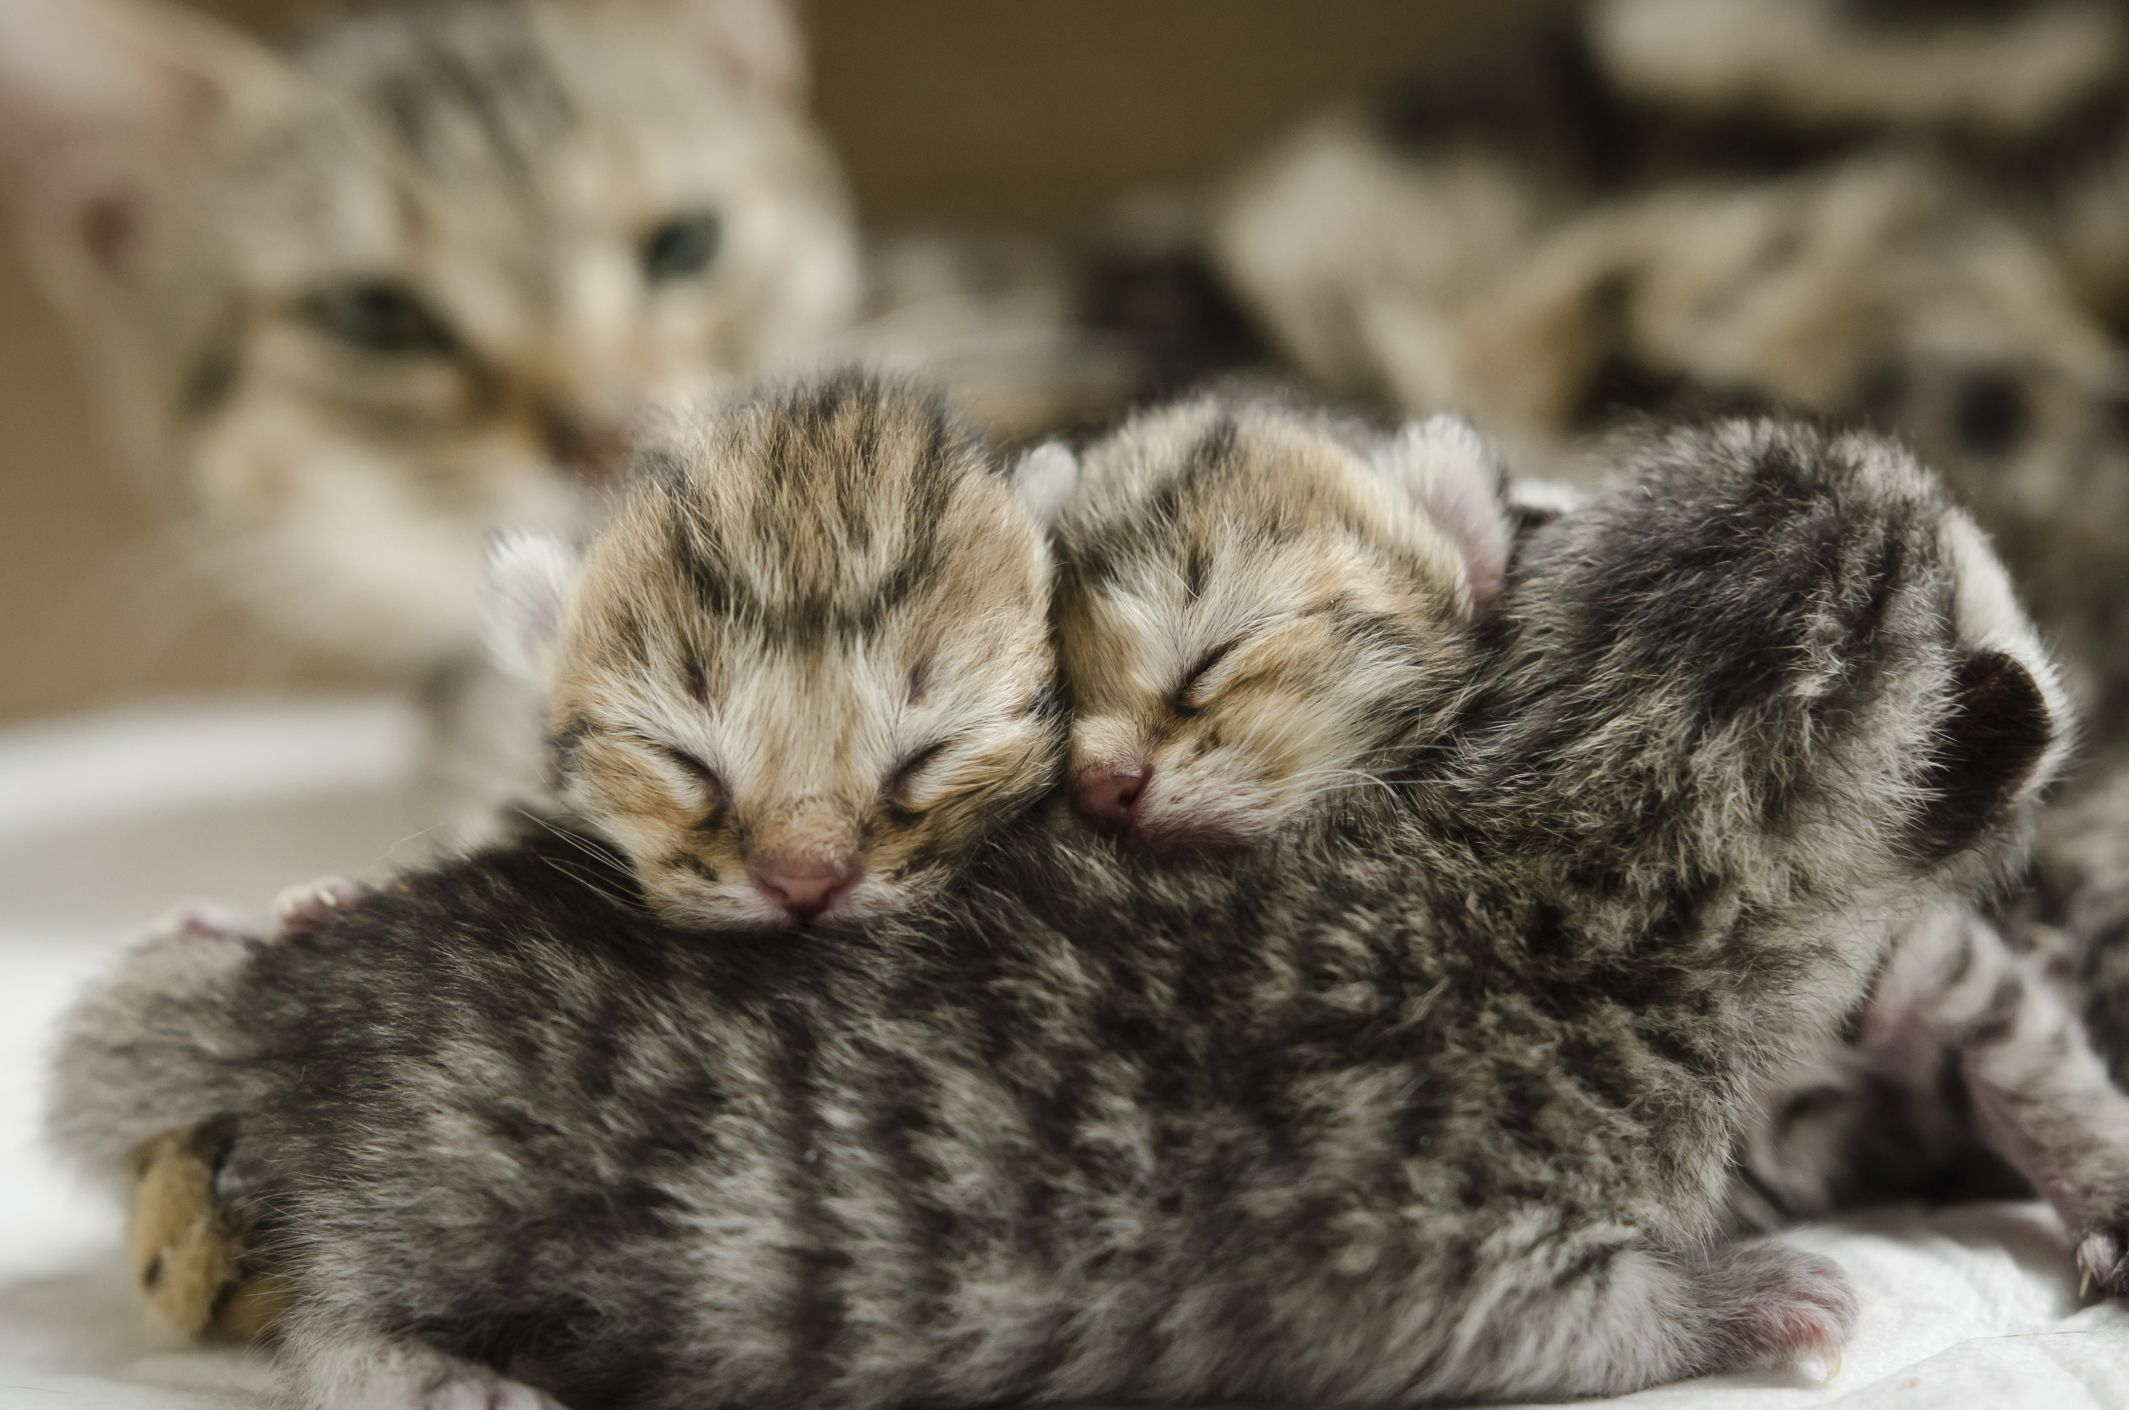 How To Take Care Of A 4 Week Old Kitten Animals Mom Me Kittens Kitten Week Newborn Care Cat Earth Take Cats In 2020 Cat Having Kittens Newborn Kittens Cat Care